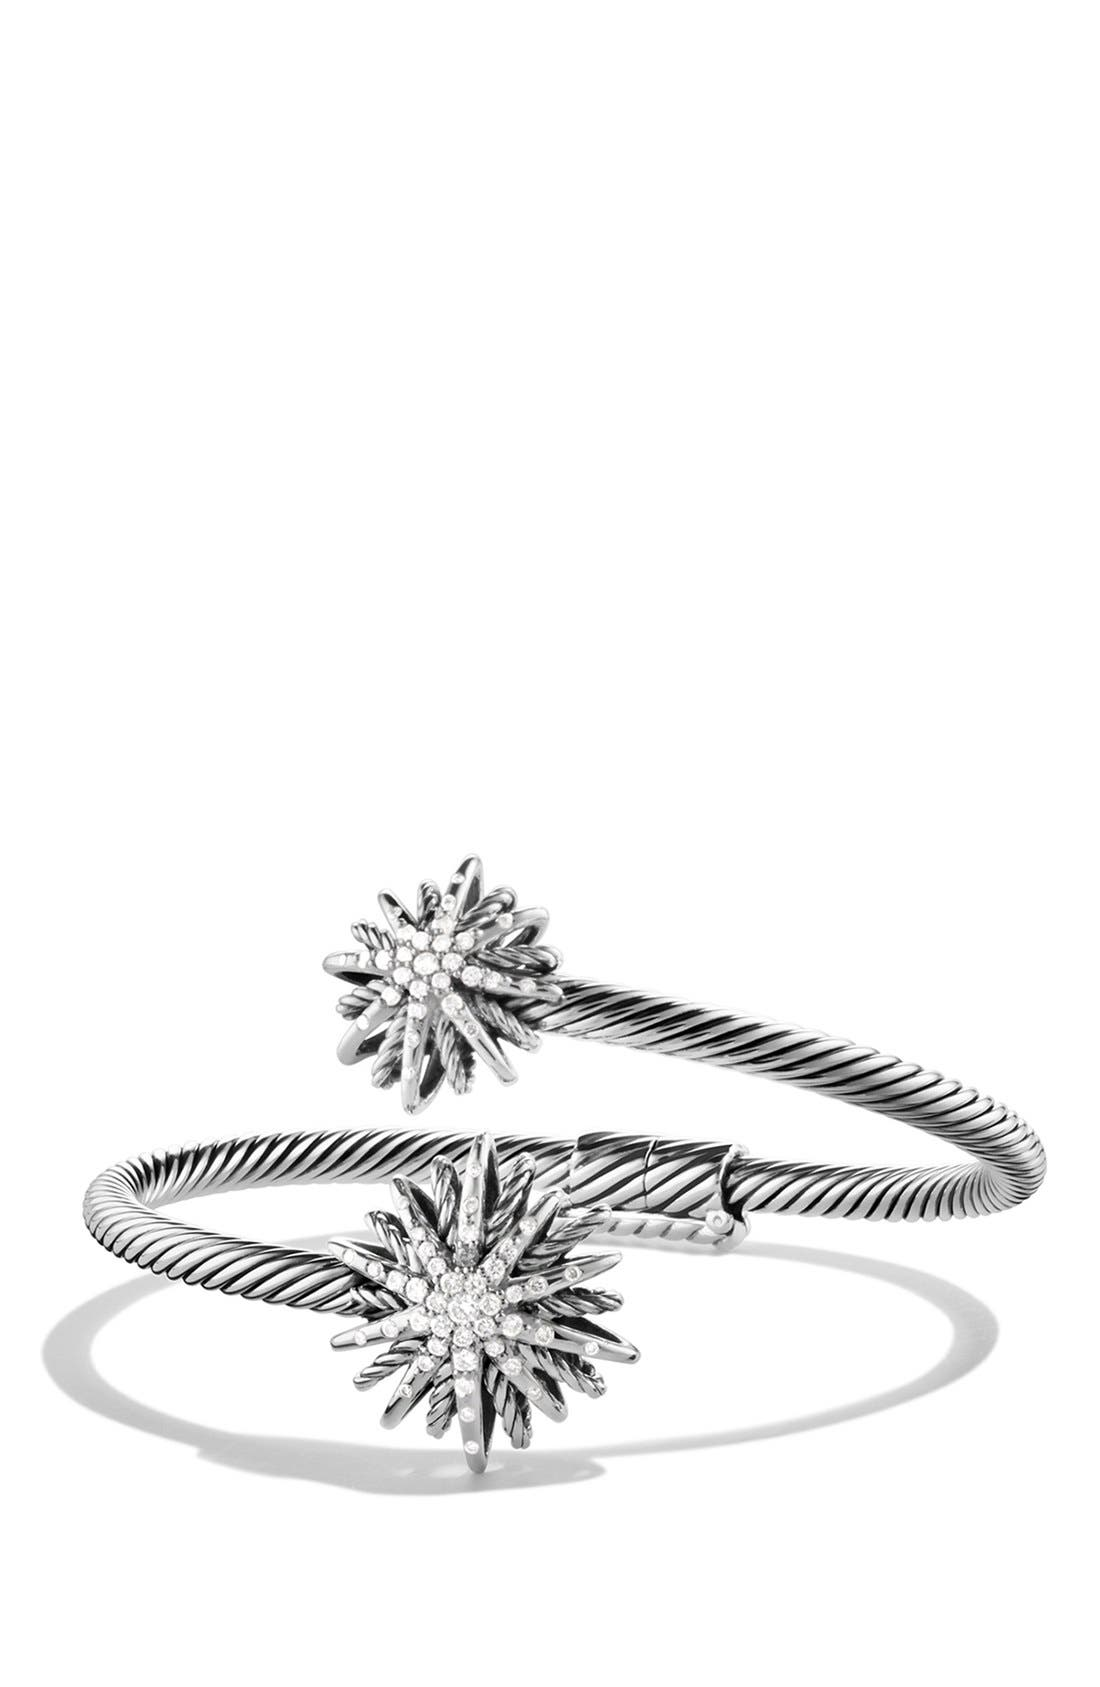 DAVID YURMAN Starburst Diamond Coil Bracelet